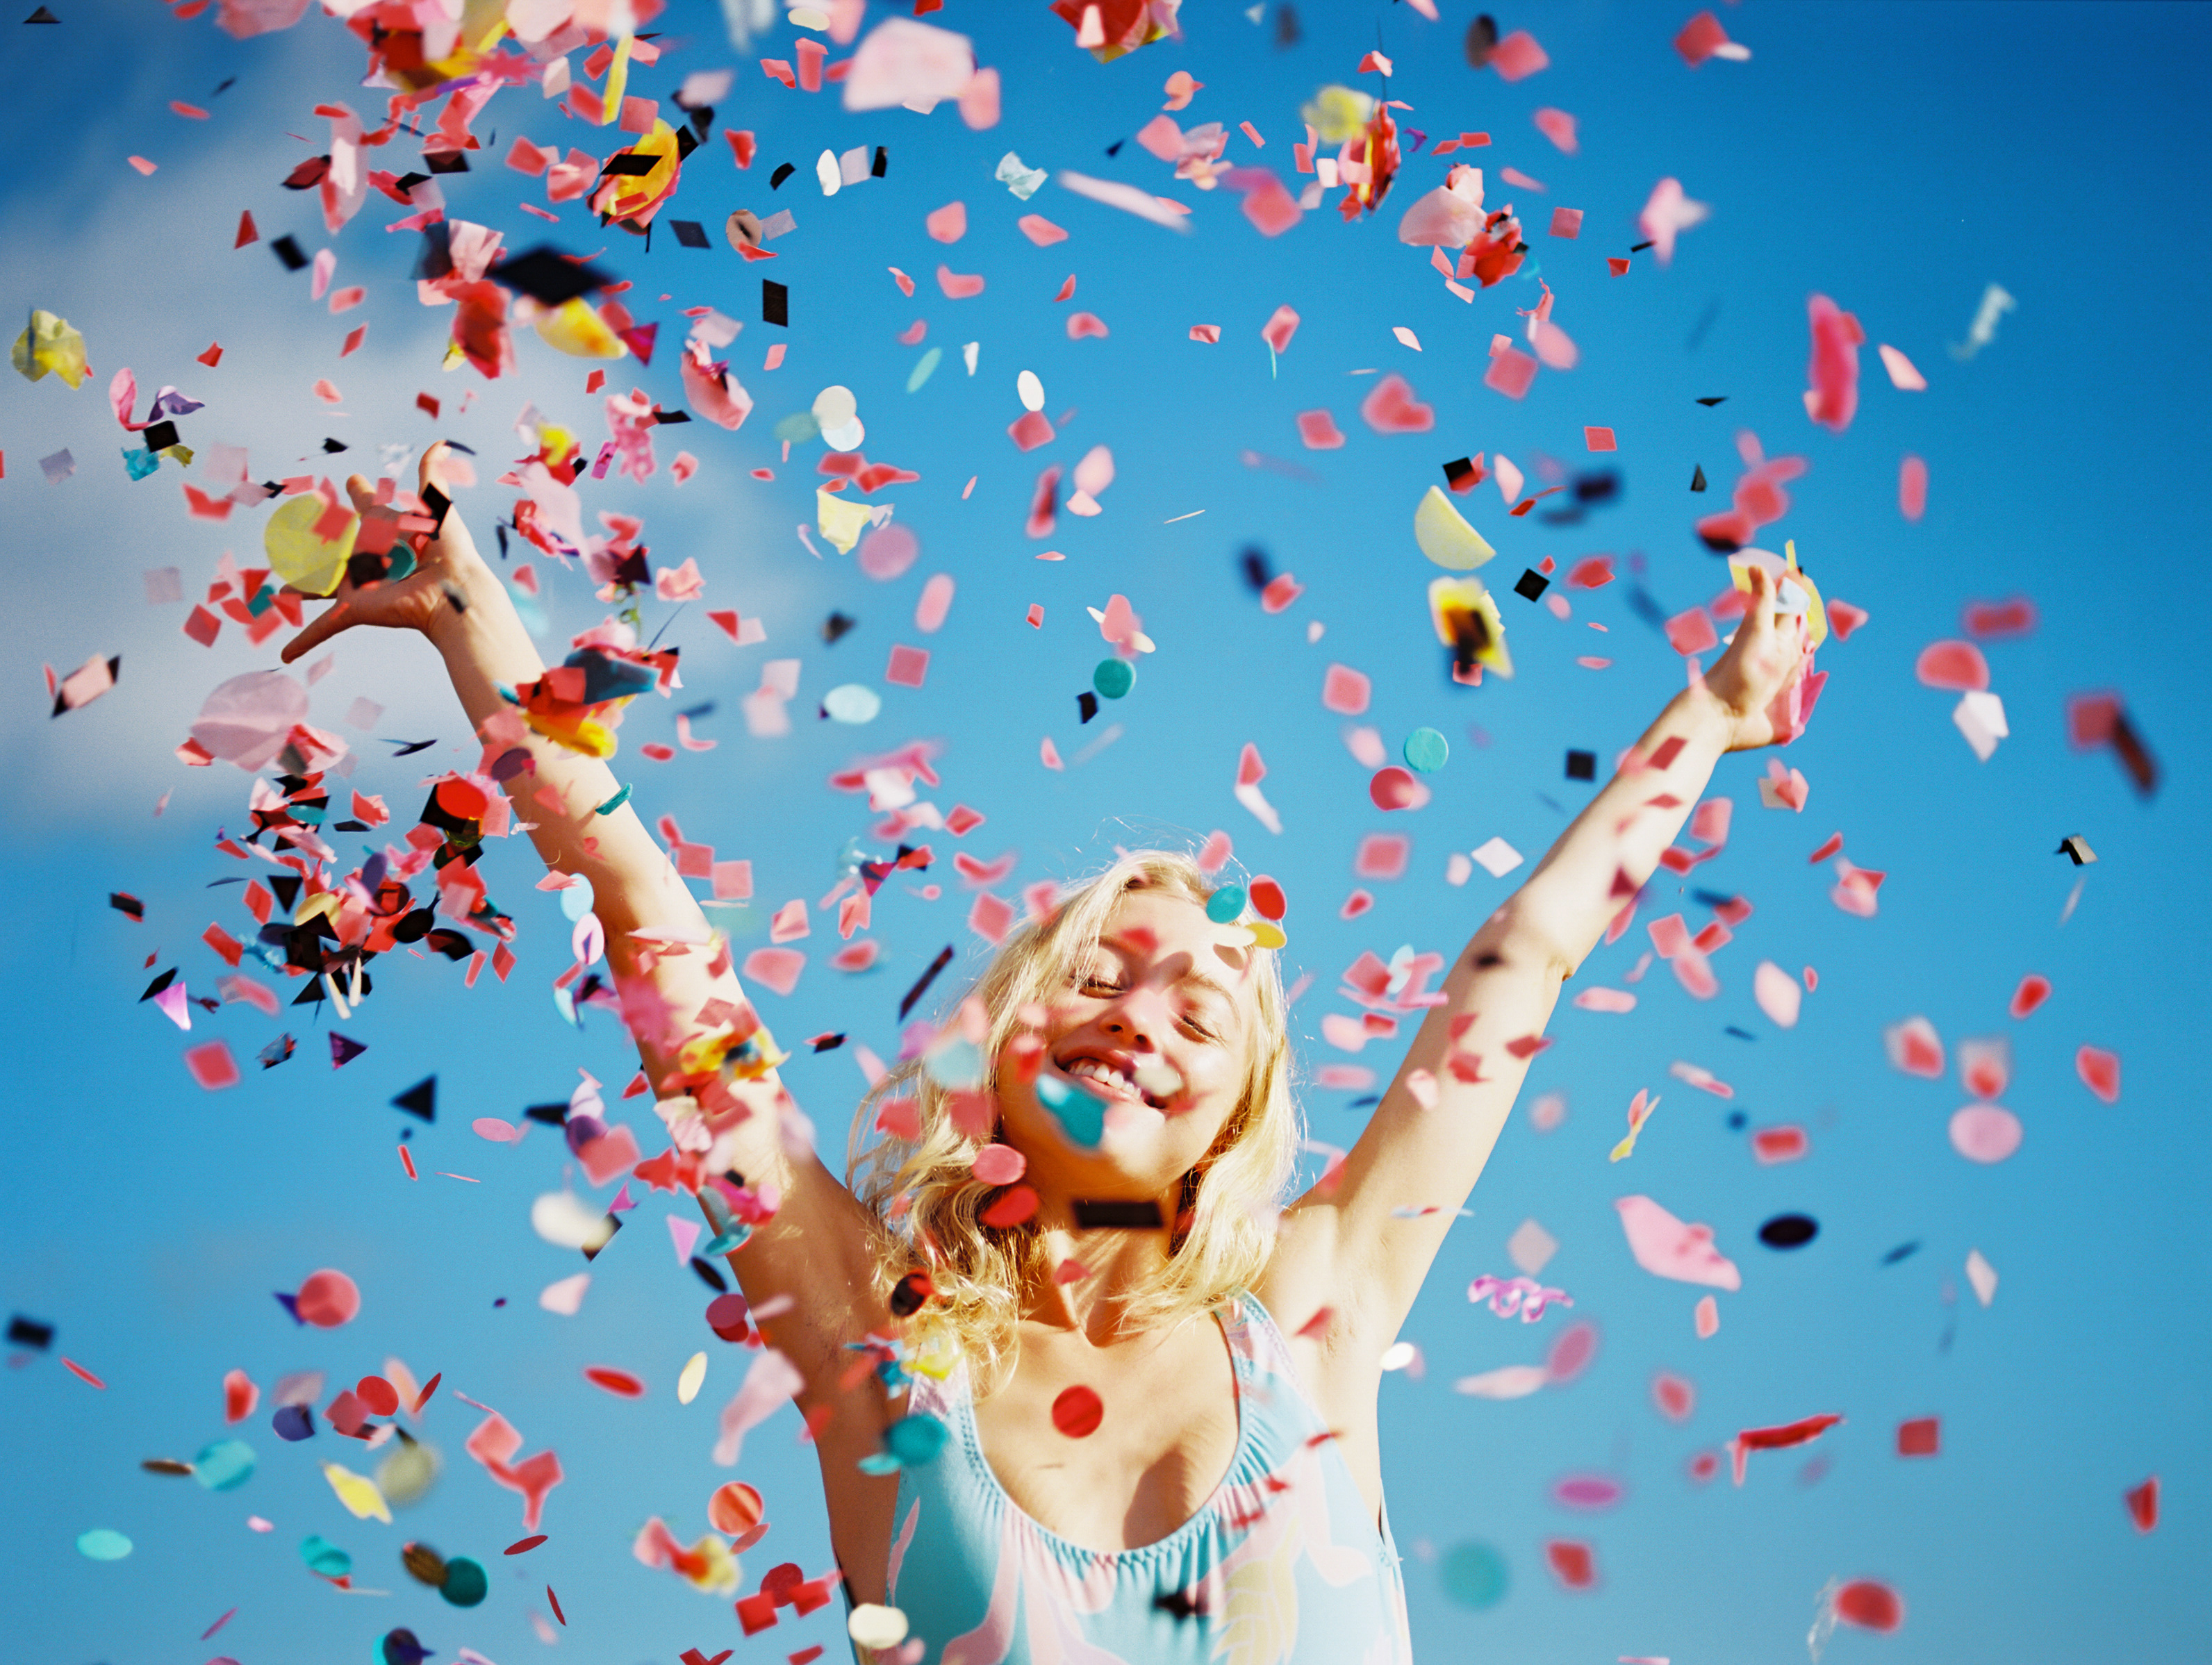 hawaii girl with colored confetti against bright blue sky by maui photographer wendy laurel